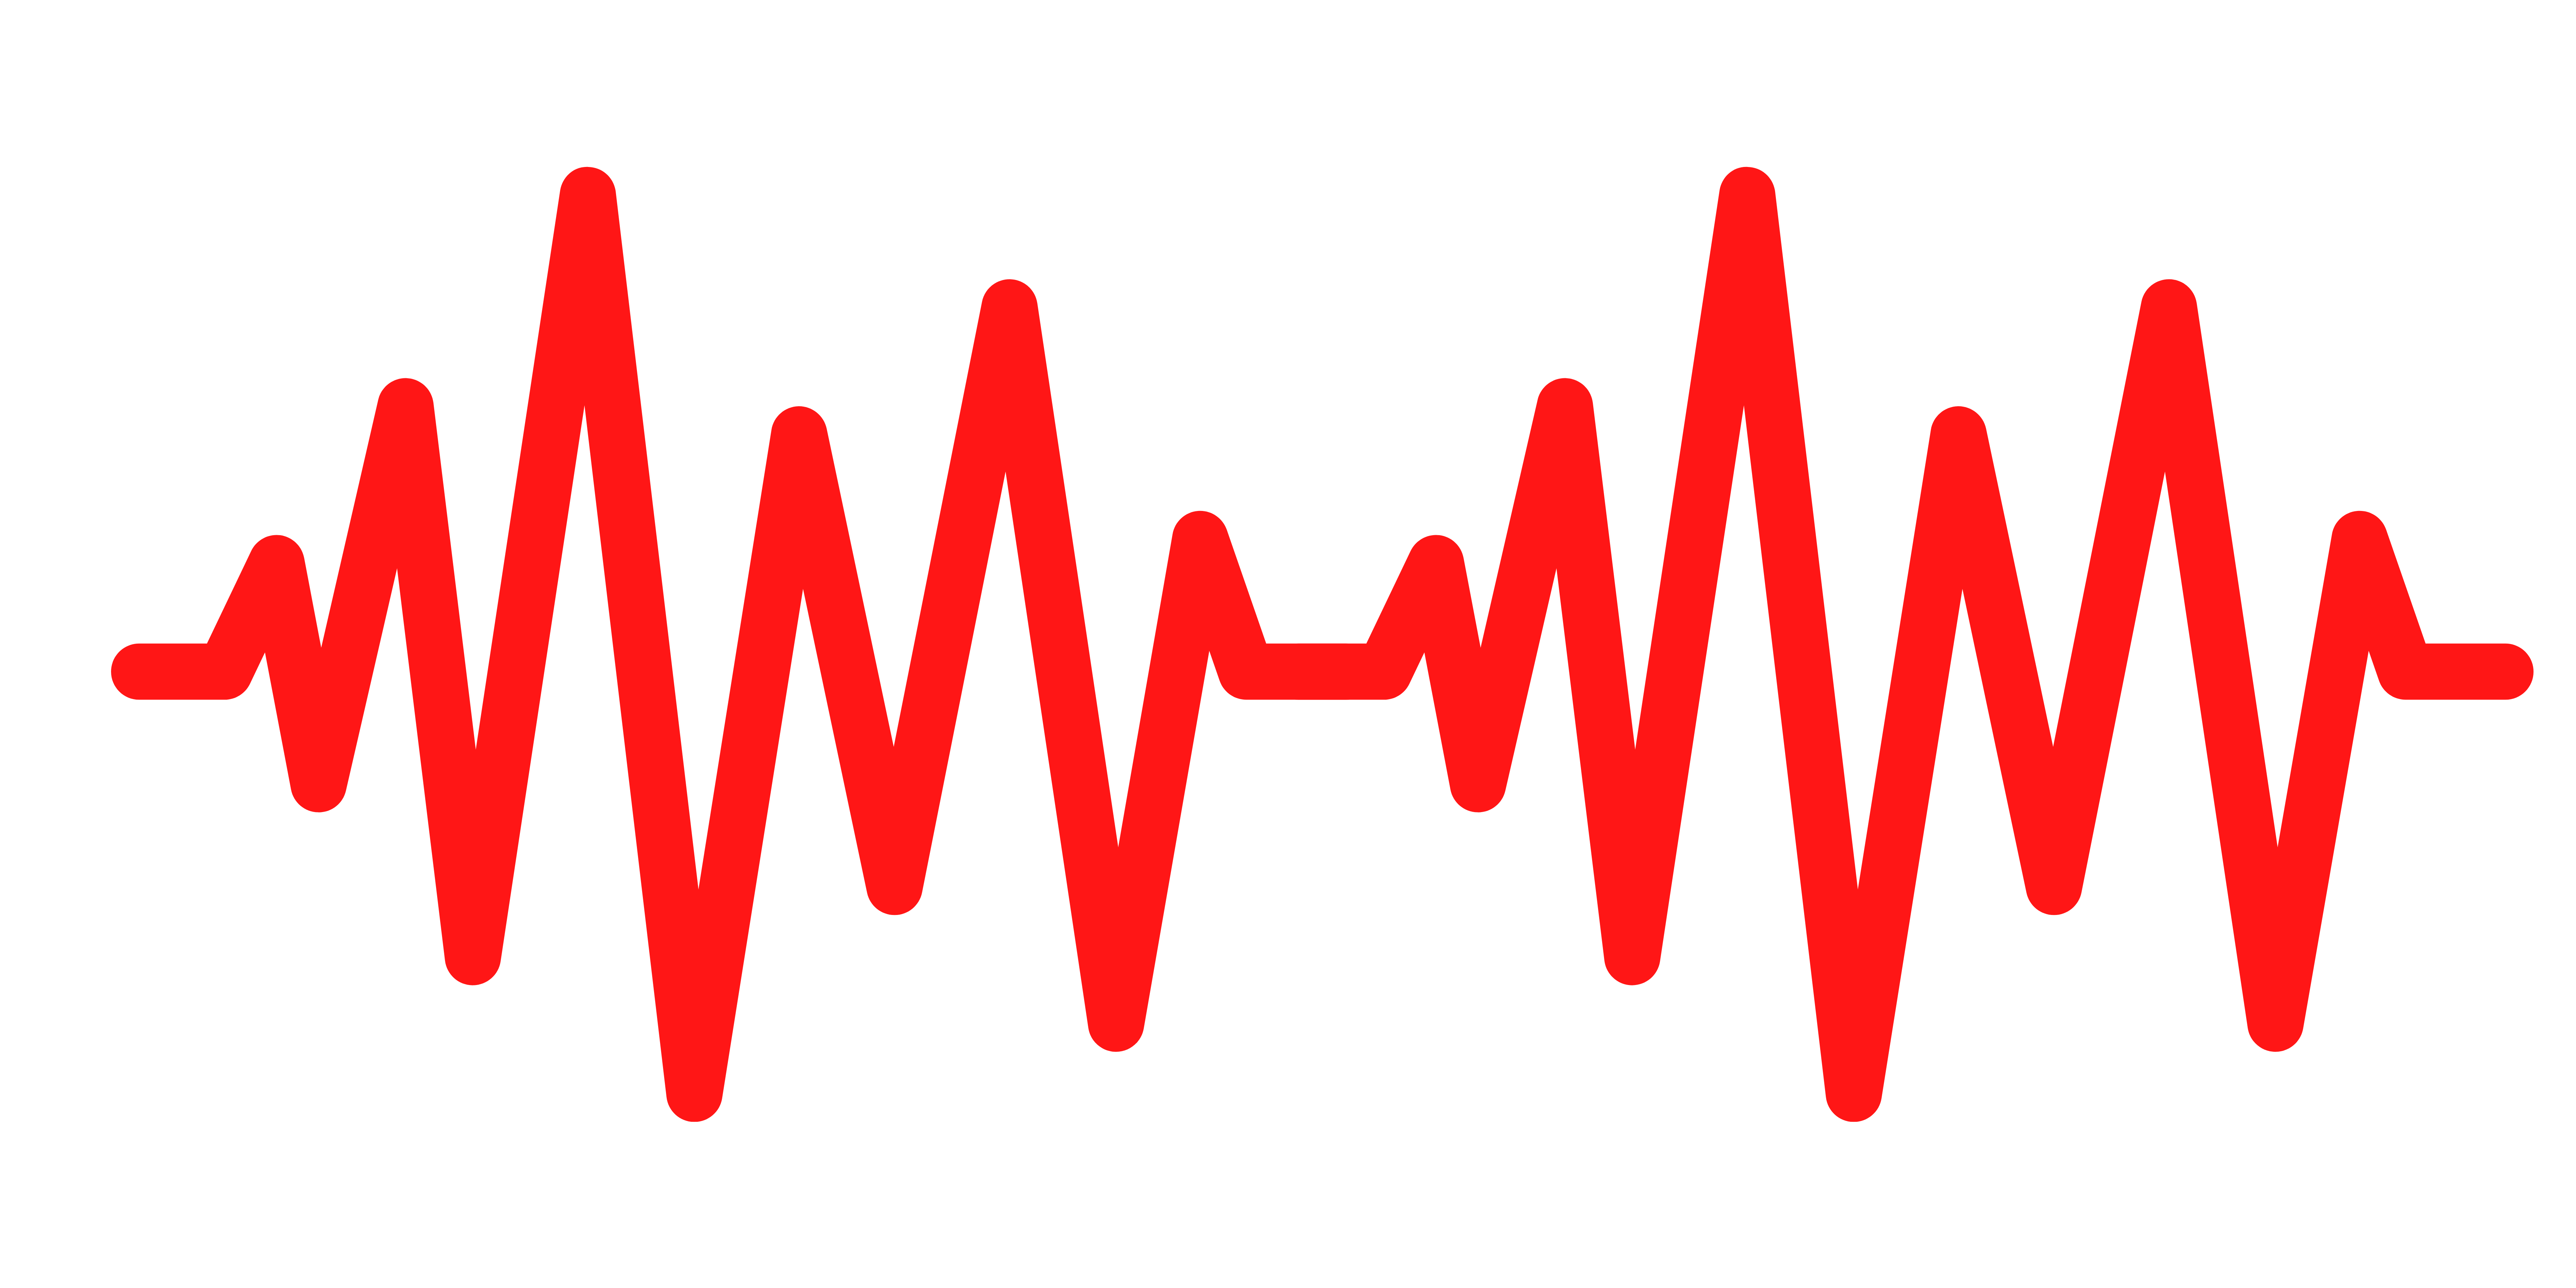 red sound wave image on white background